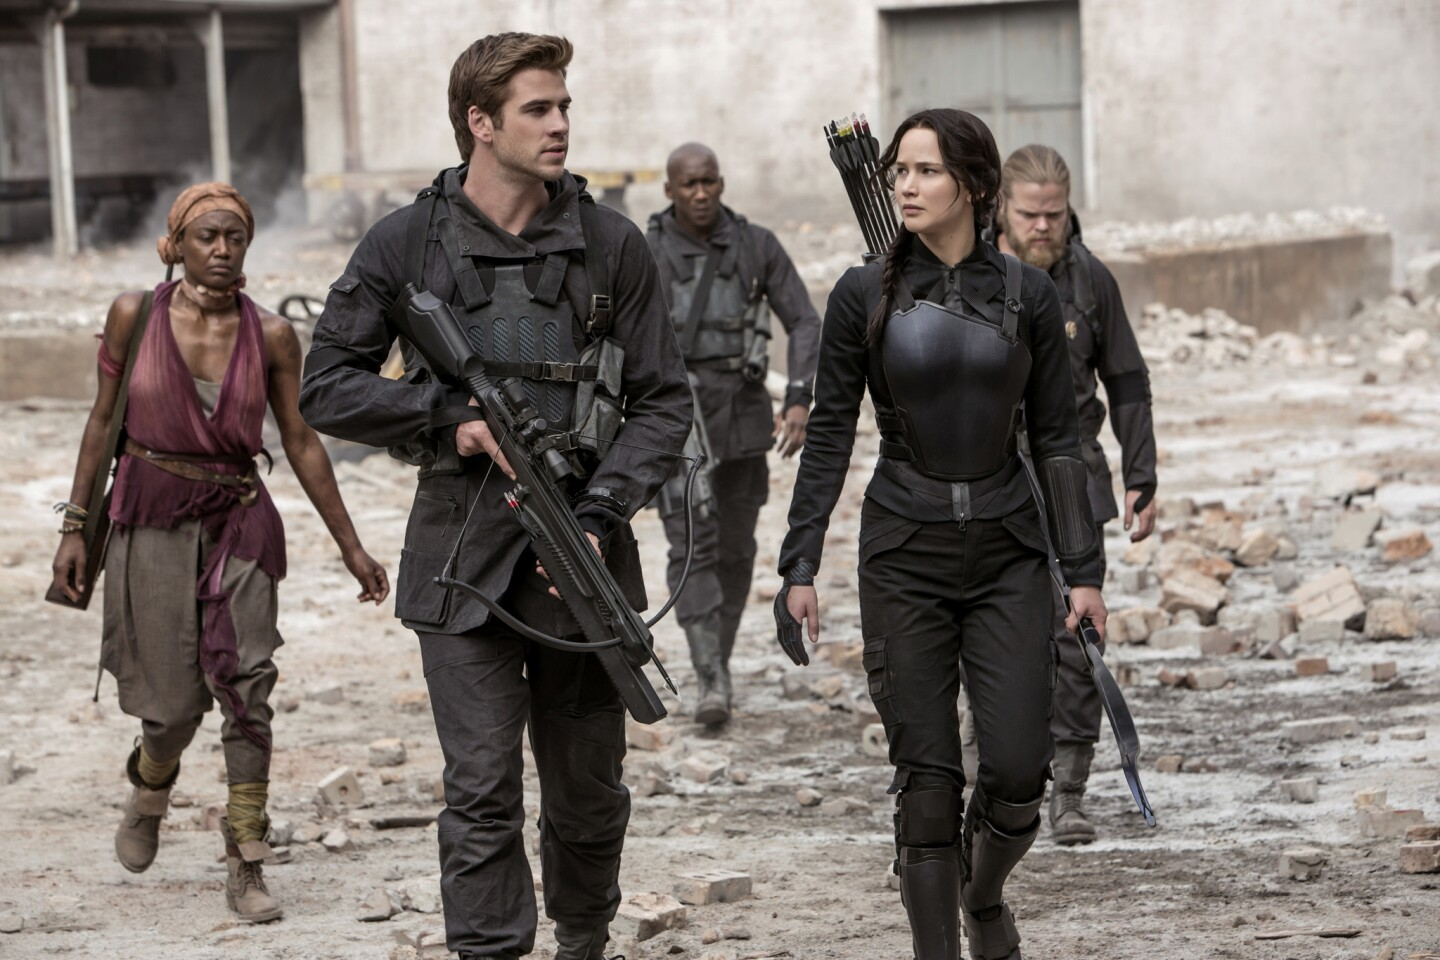 Liam Hemsworth as Gale Hawthorne, Jennifer Lawrence as Katniss Everdeen, and other cast members in costumes by Kurt & Bart in The Hunger Games Mockingjay Part 1.